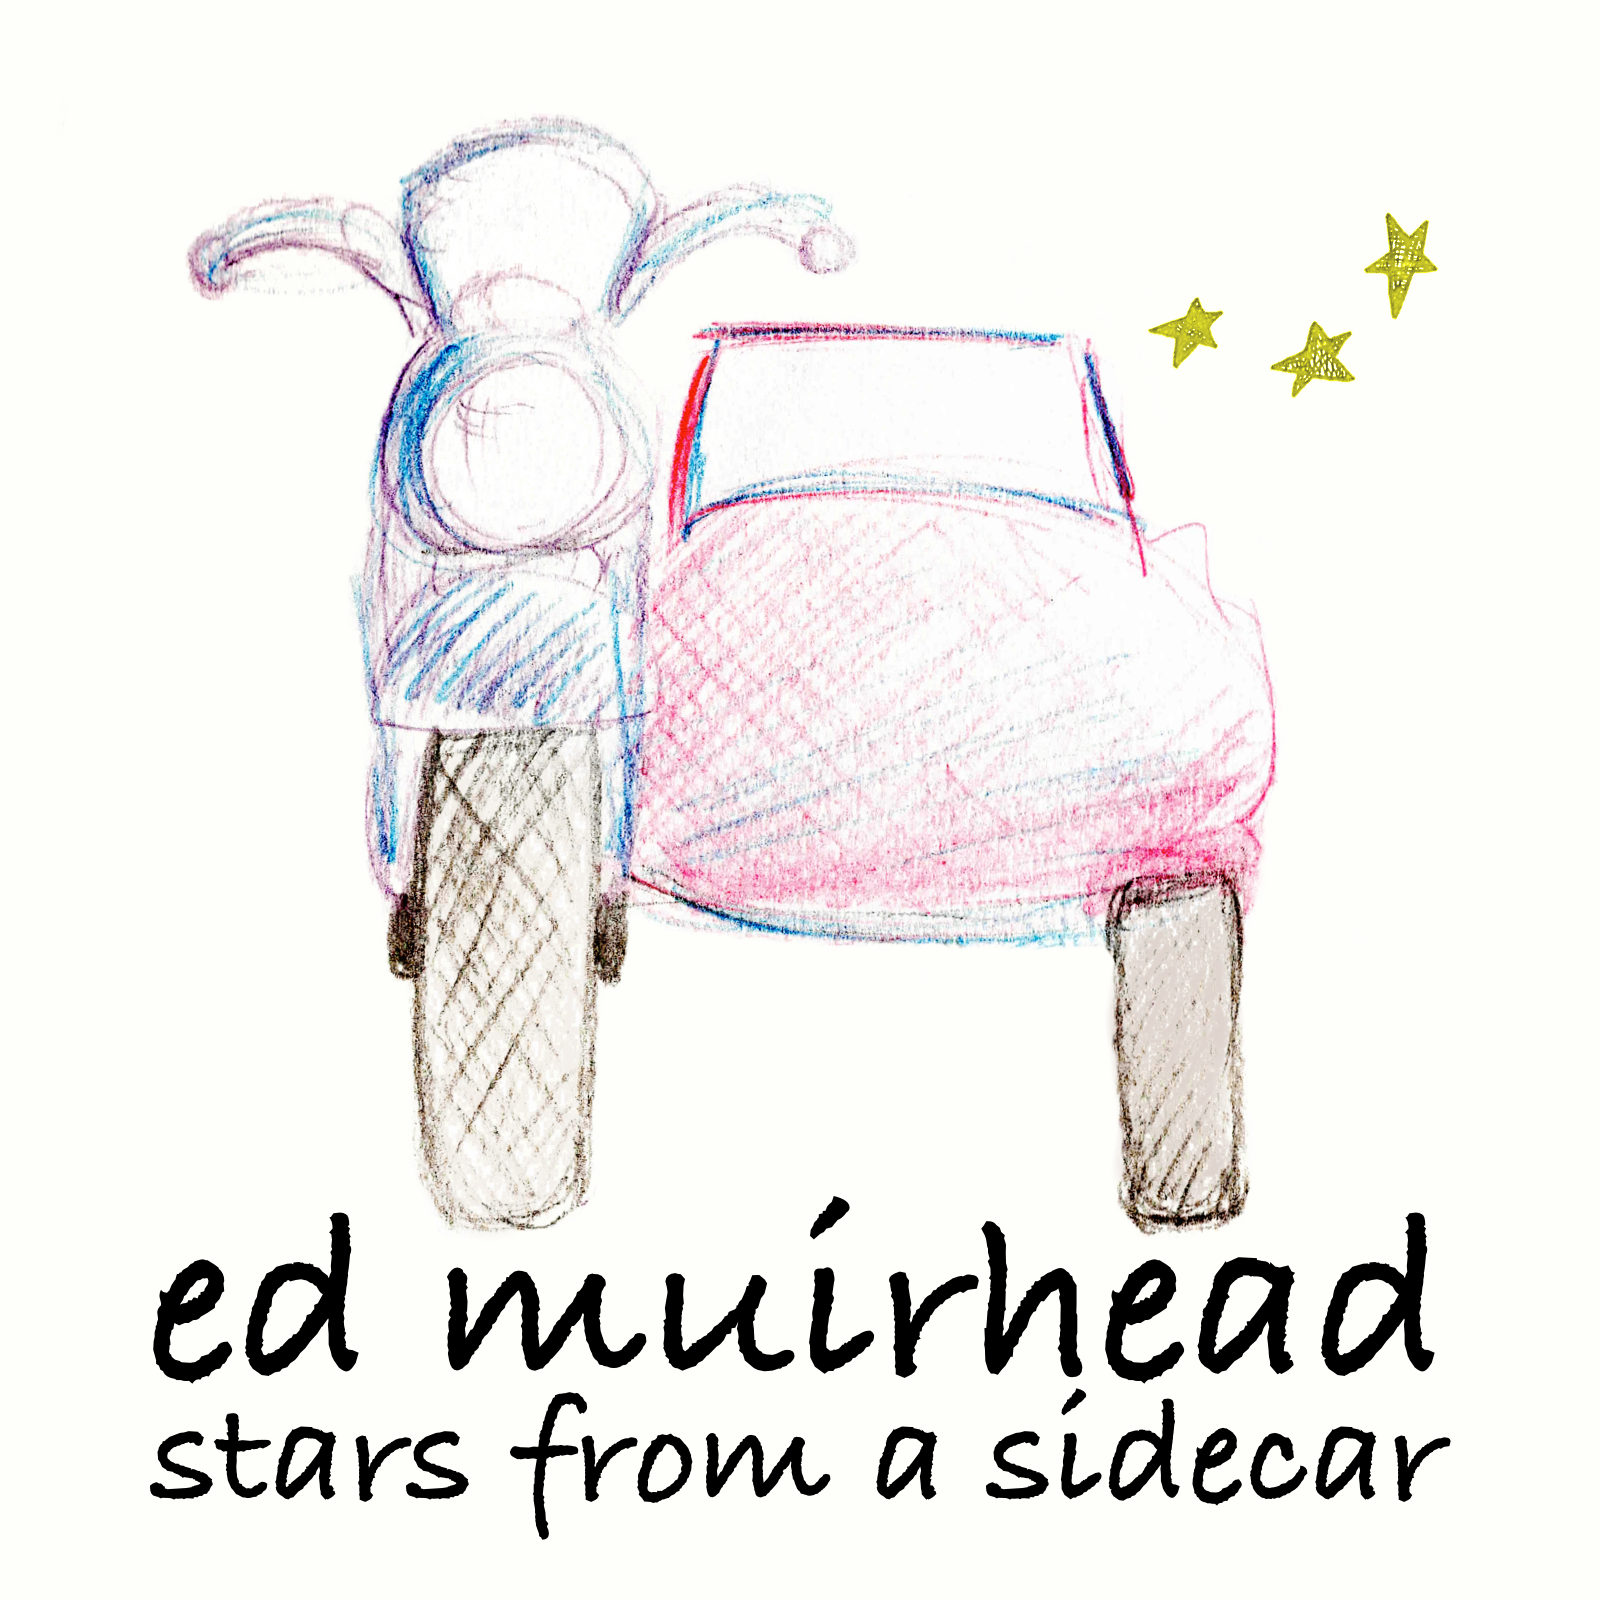 stars from a sidecar